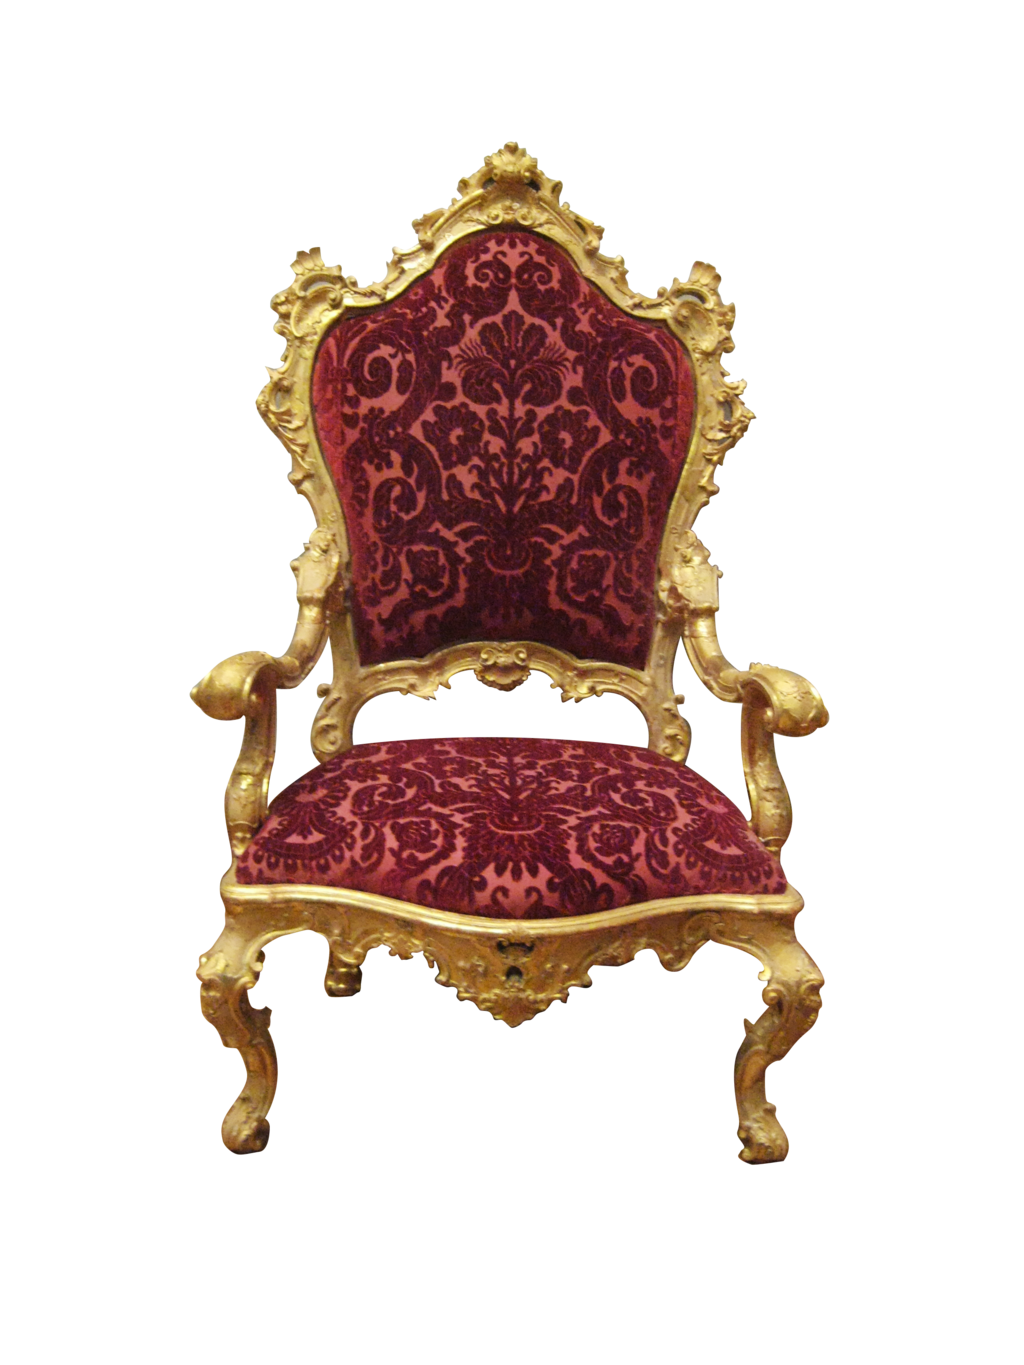 Throne PNG Images Transparent Free Download.